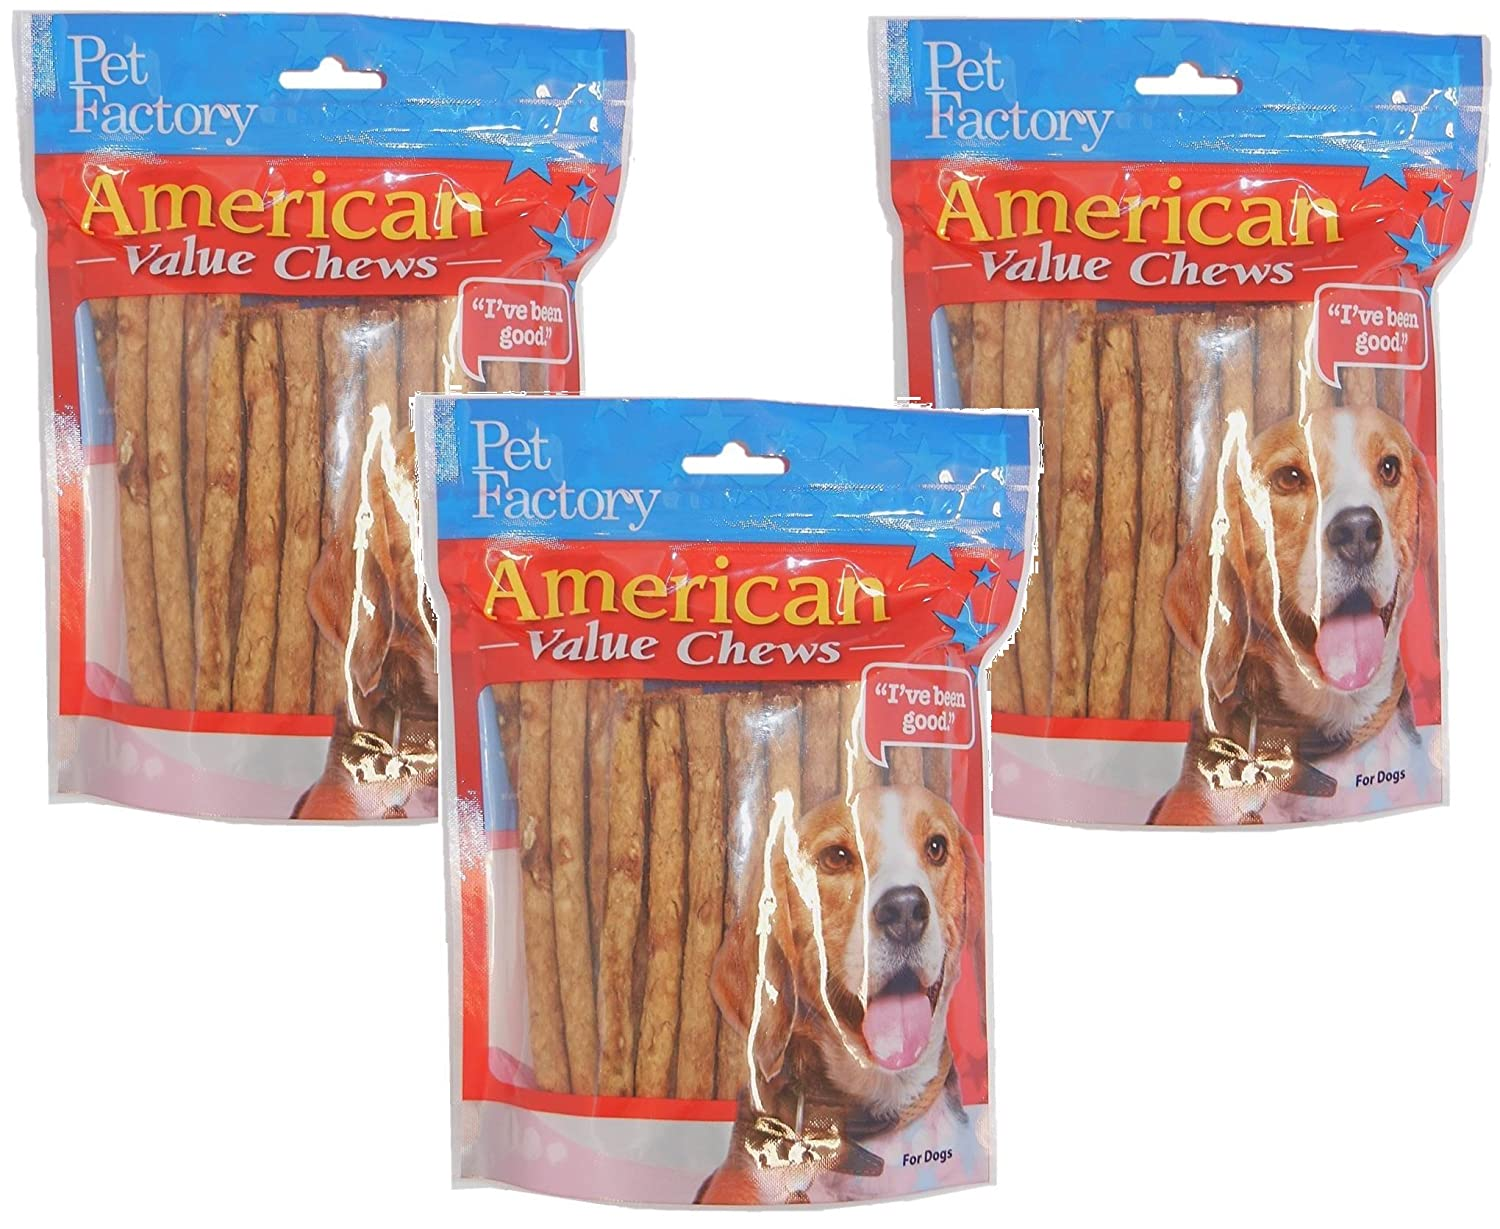 Pet Factory Chicken Dog Roll, 120 Total 3 Packs with 40 Rolls per Pack